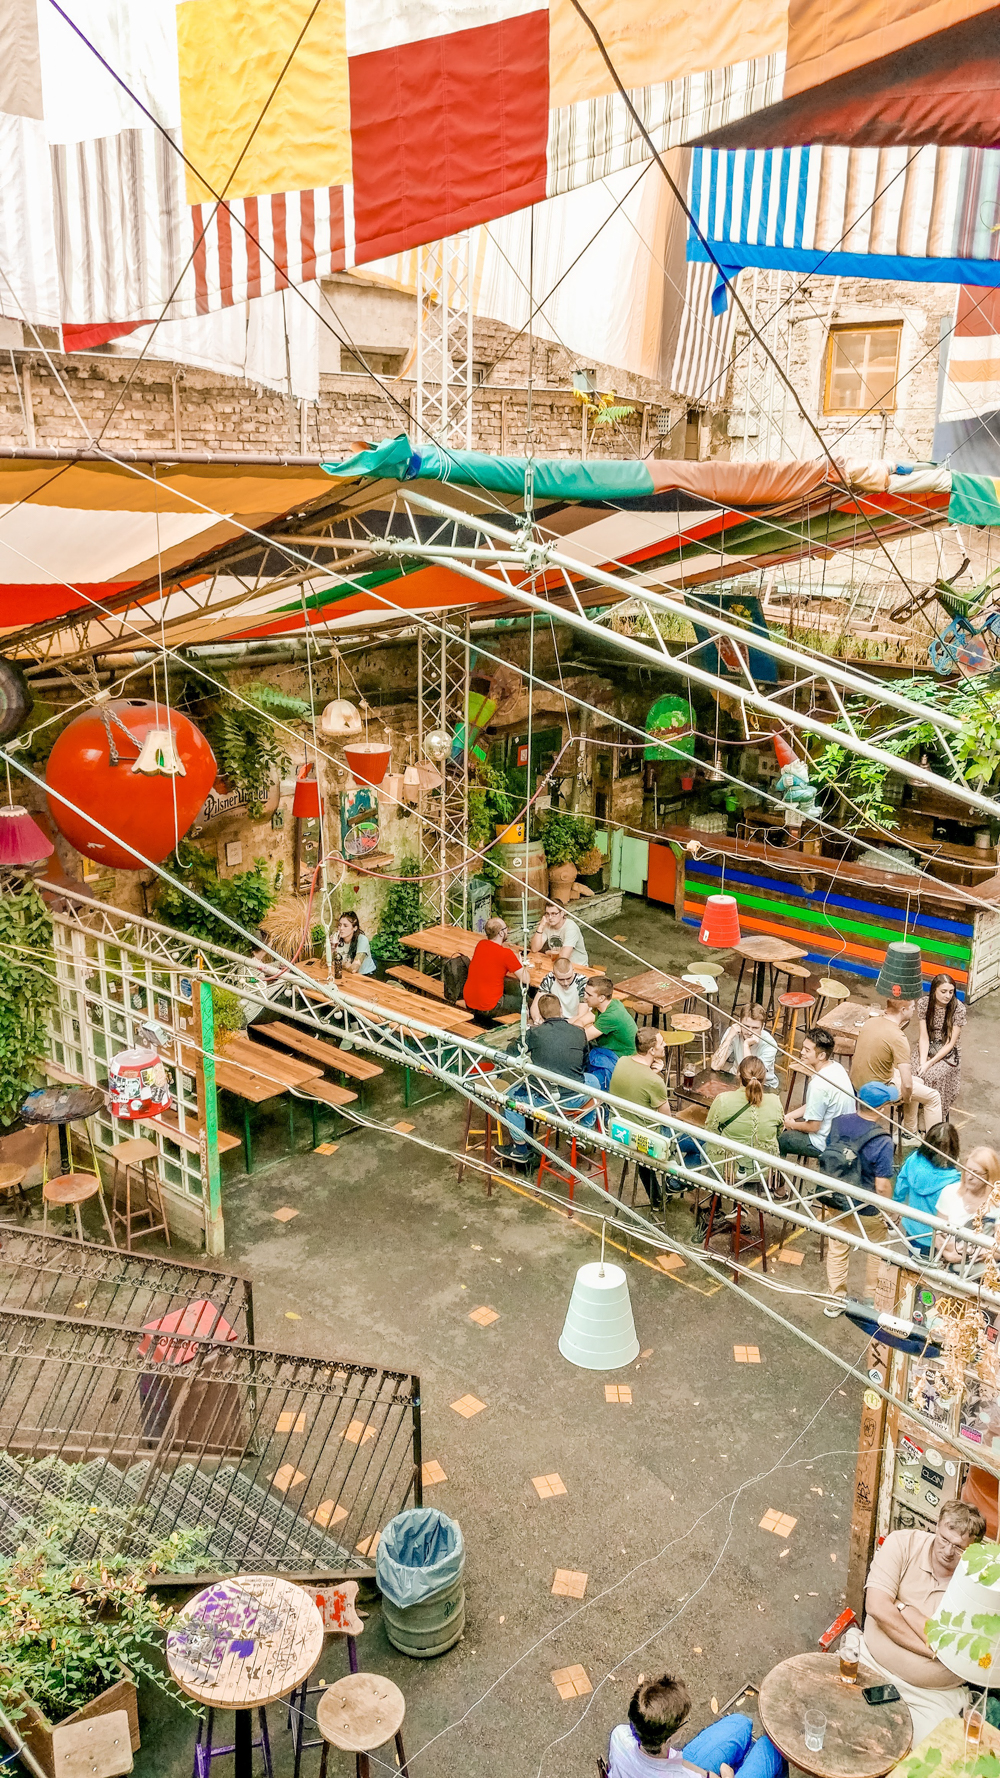 Szimpla Kert ruin bar - How to explore Budapest in 2 days? - a local's travel guide with prices and map | Aliz's Wonderland